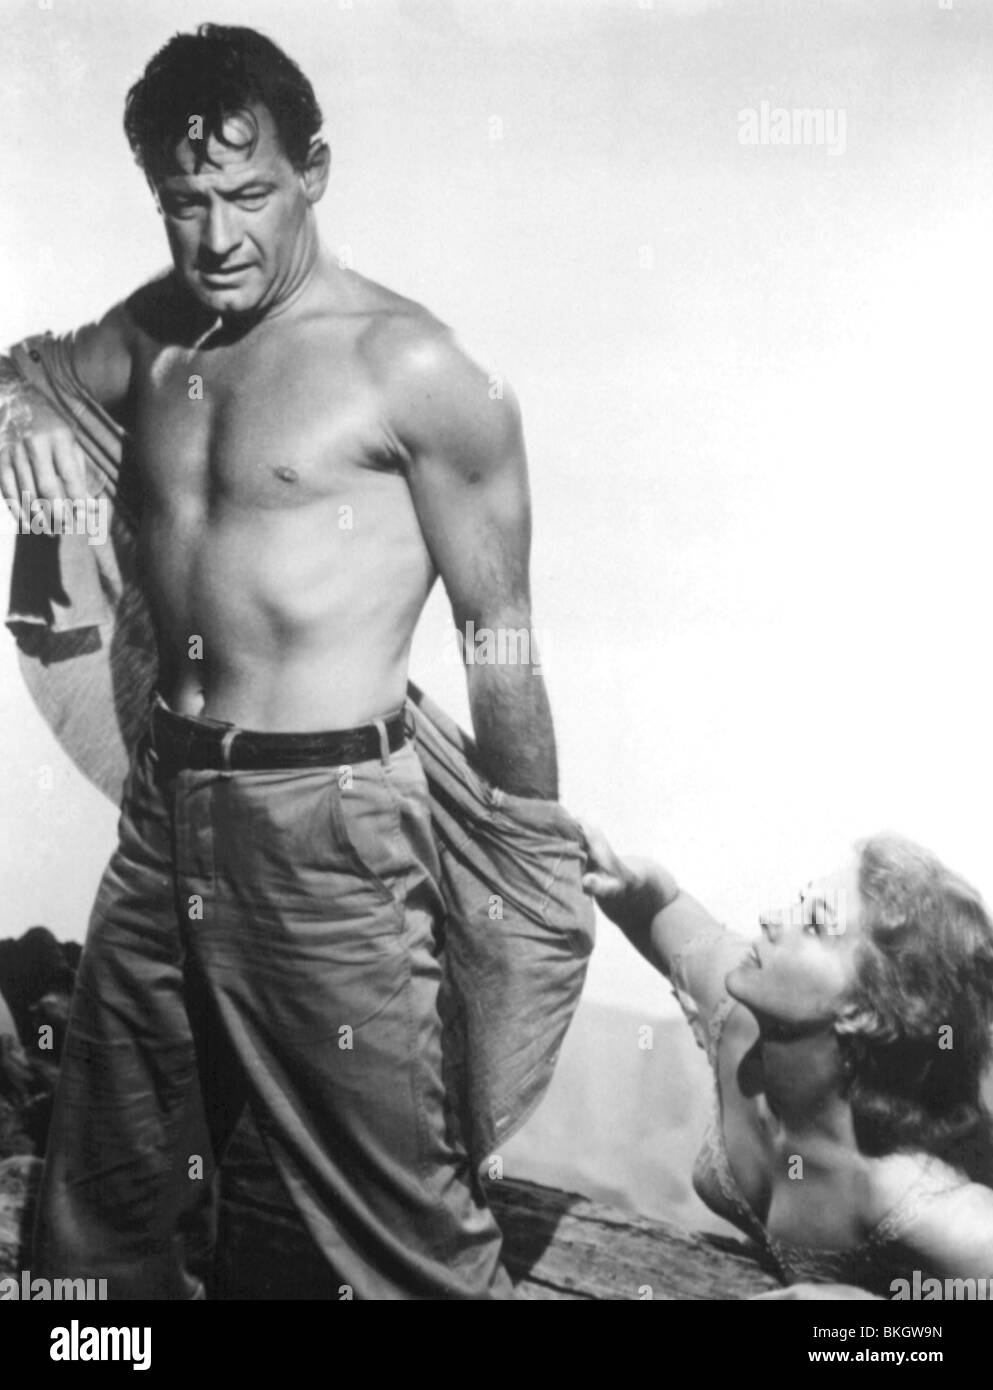 Picnic 1955 William Holden High Resolution Stock Photography and Images -  Alamy